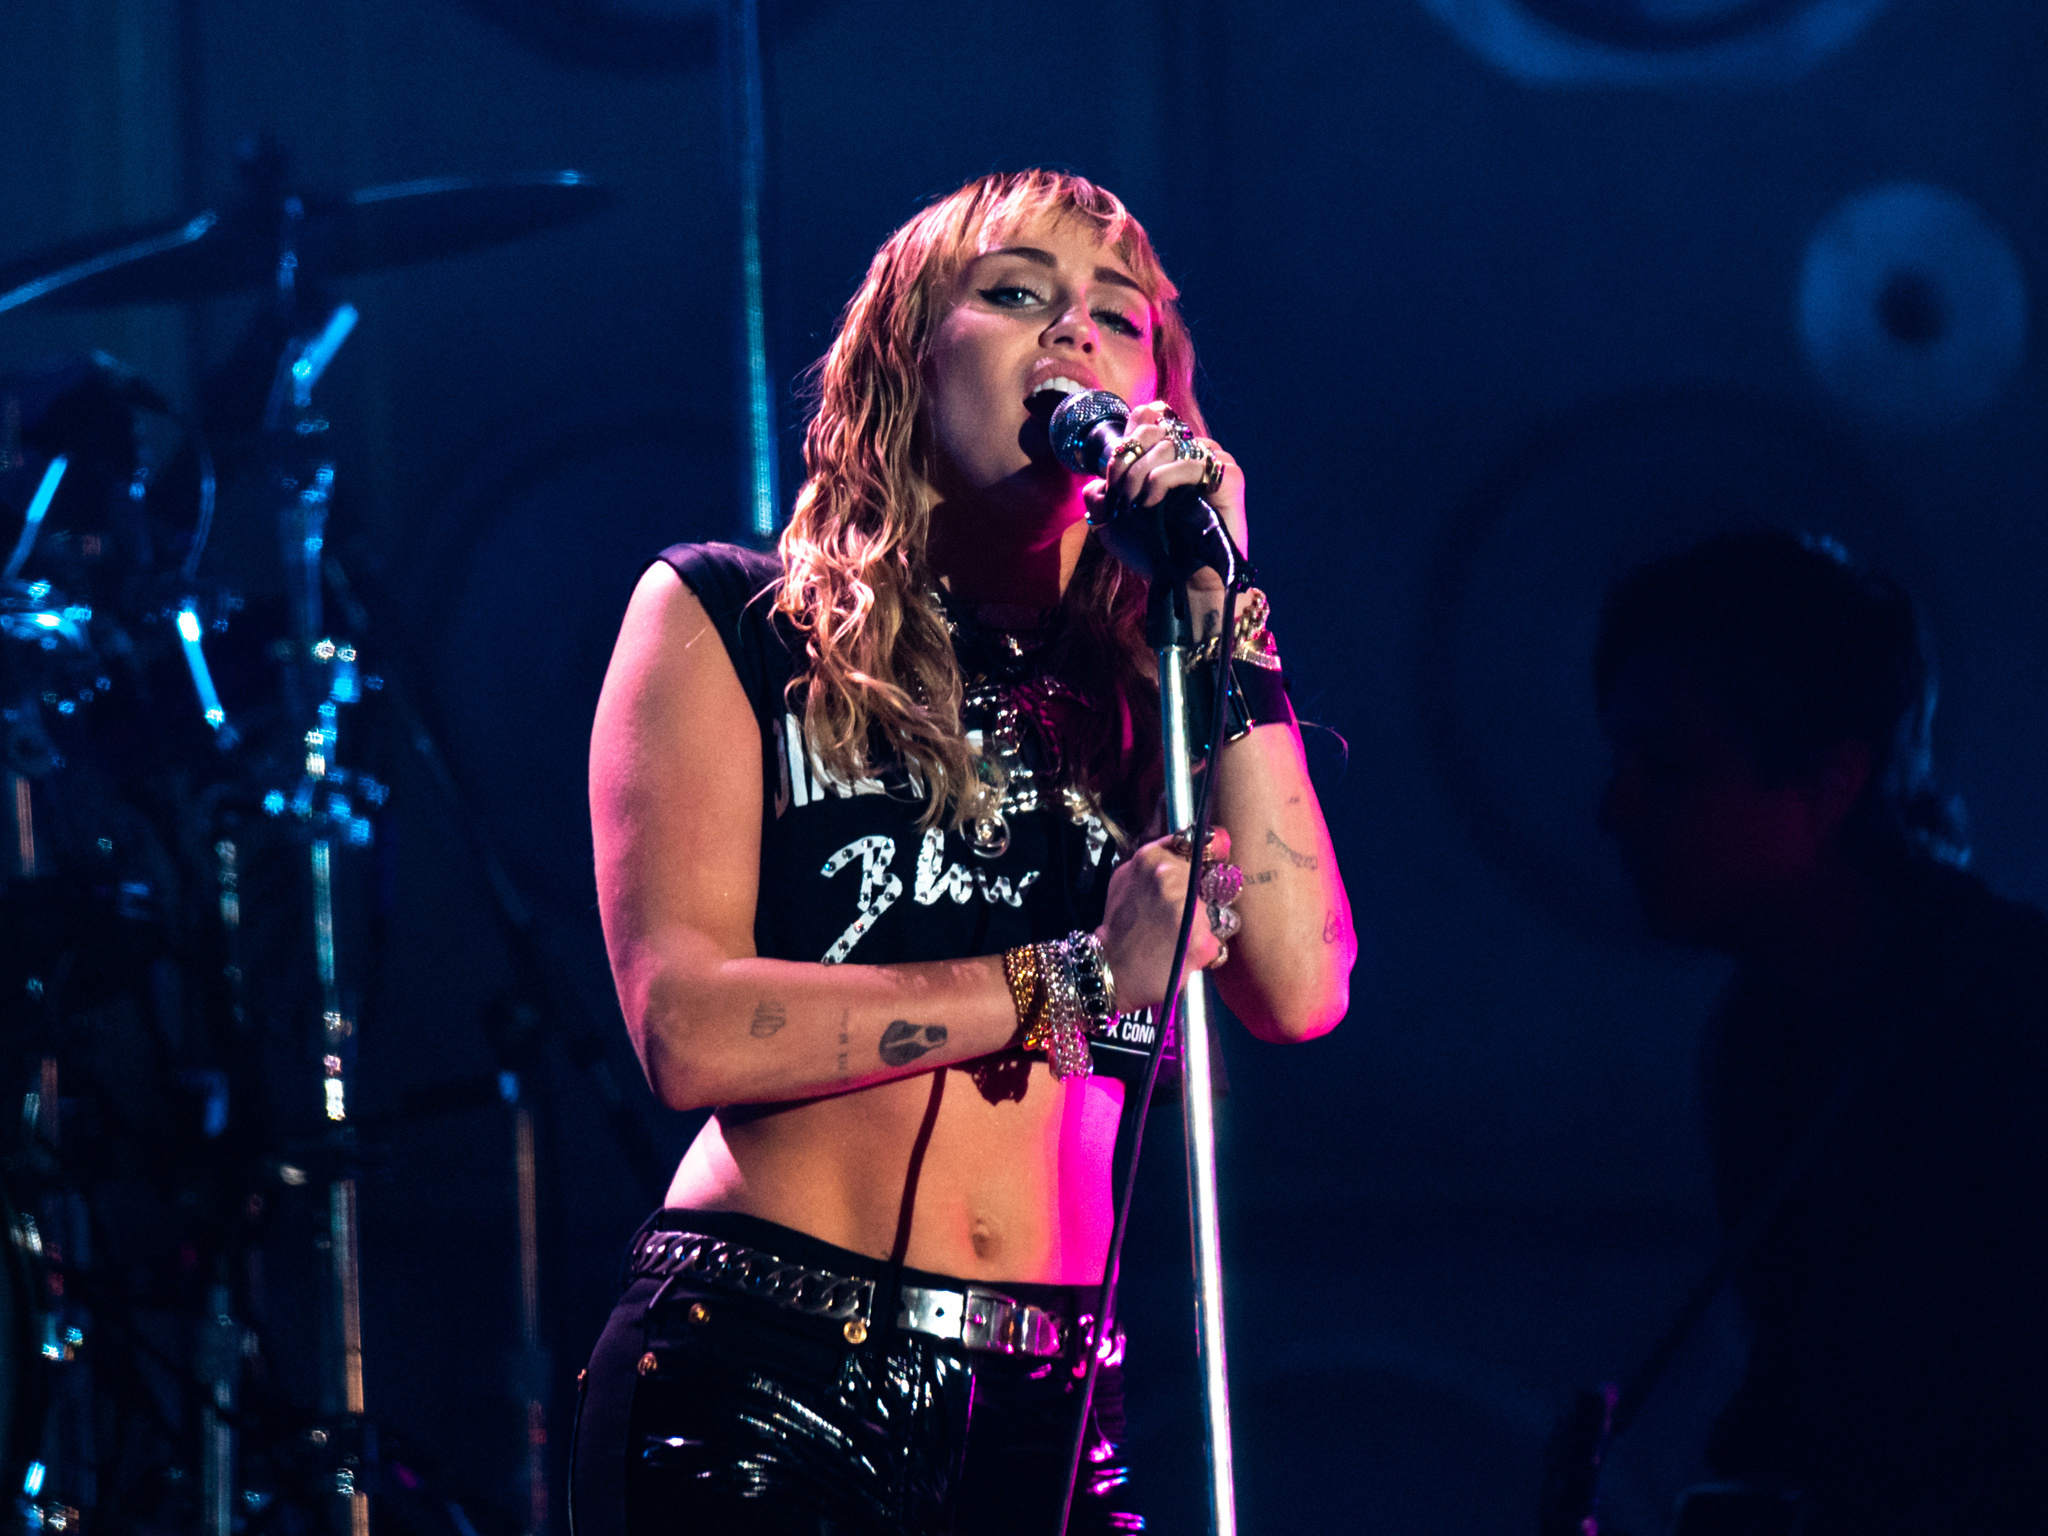 Miley Cyrus is headlining an epic charity stream